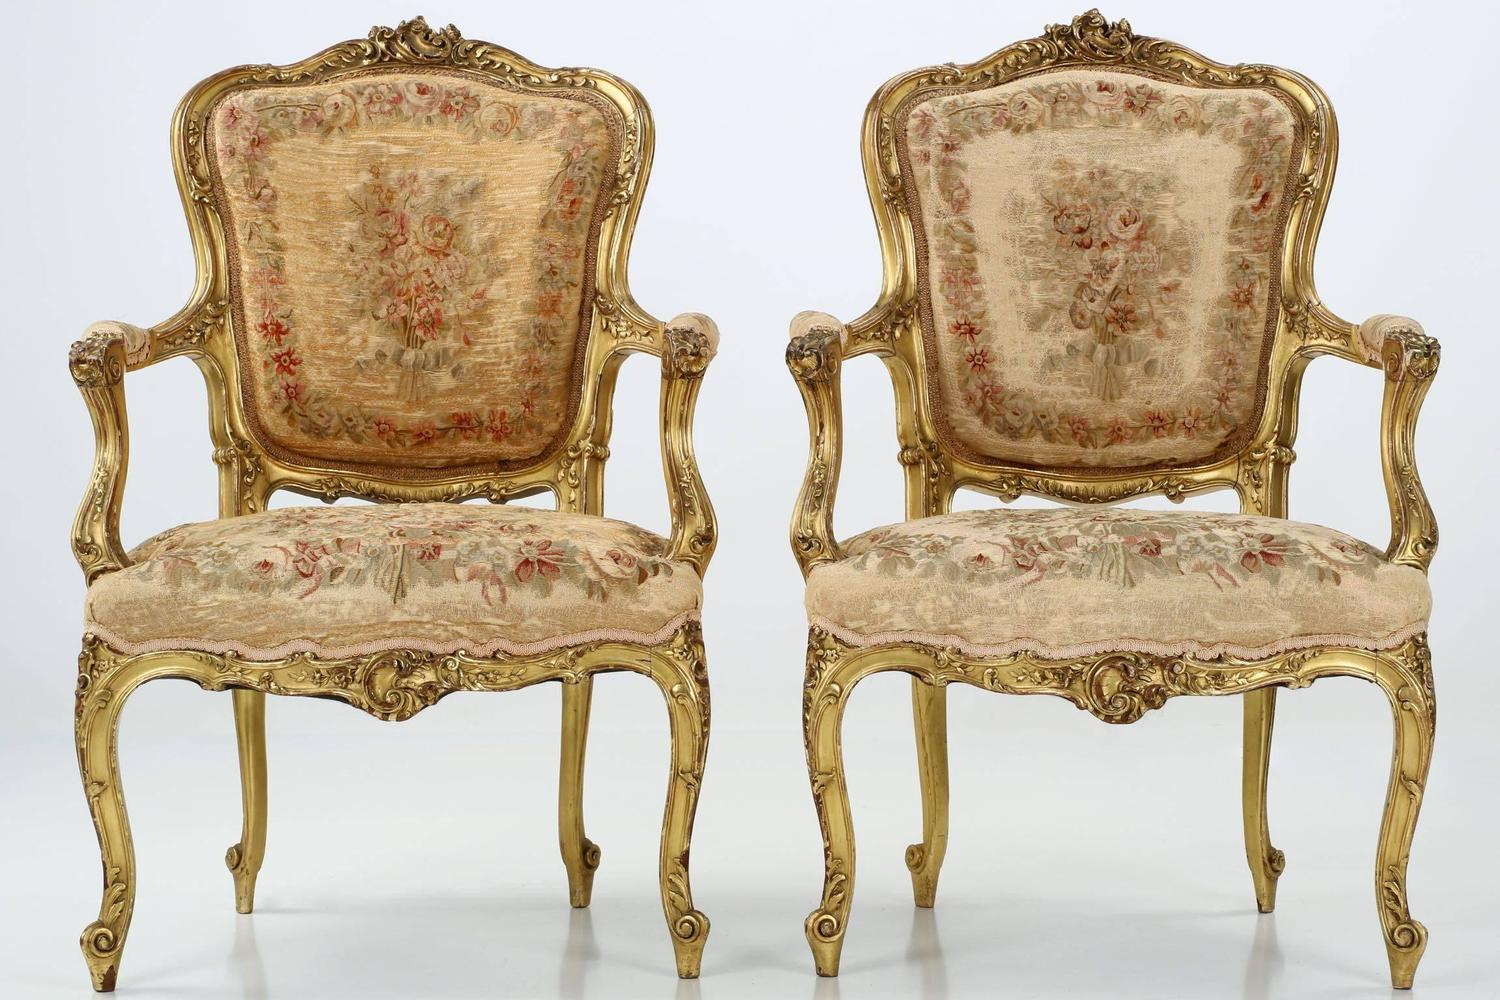 Pair Of French Louis Xv Style Antique Fauteuil Arm Chairs 19th Century C 1870 For Sale At 1stdibs